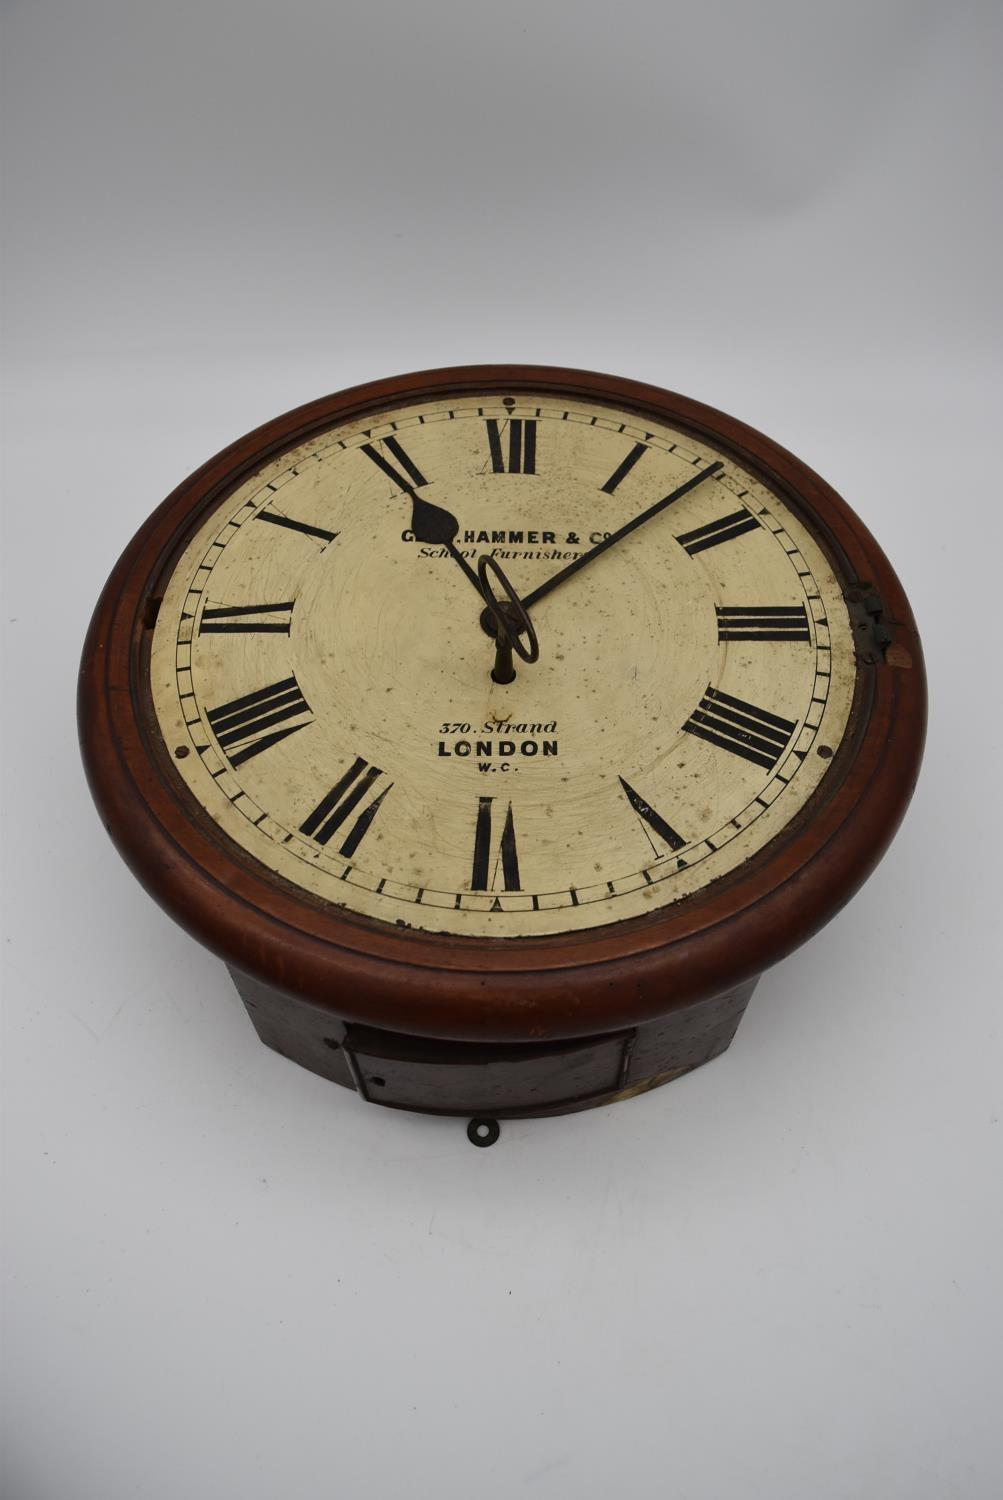 A 19th century mahogany cased drop dial wall clock, Geo Hammer and Co, a dial clock face and - Image 5 of 10